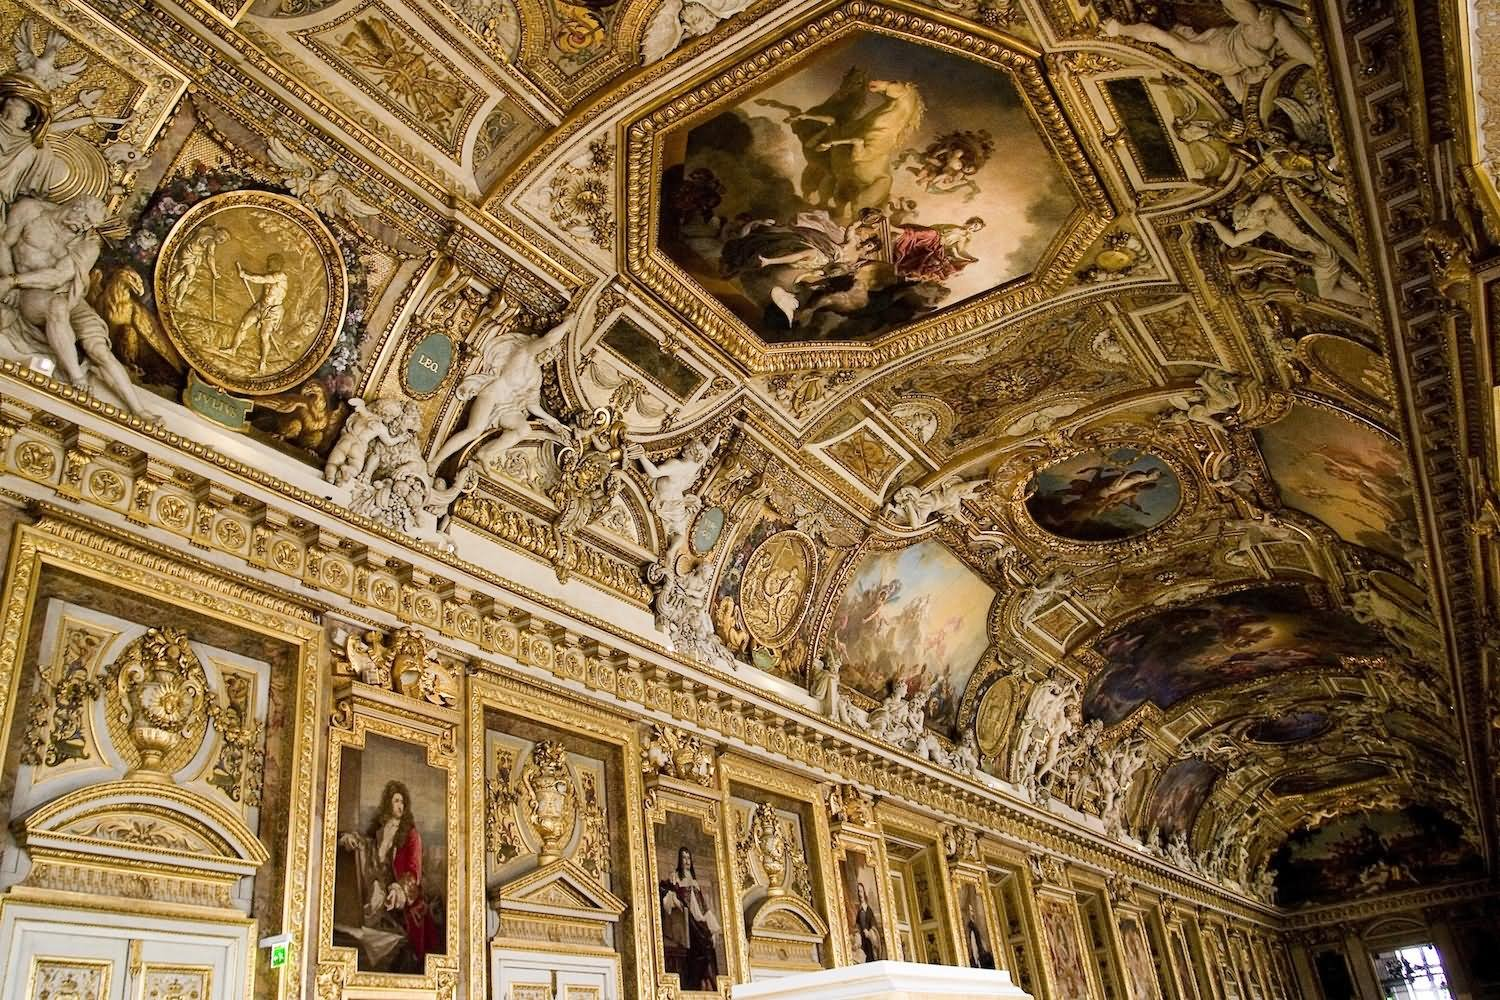 18 Very Beautiful The Louvre Interior Pictures And Images